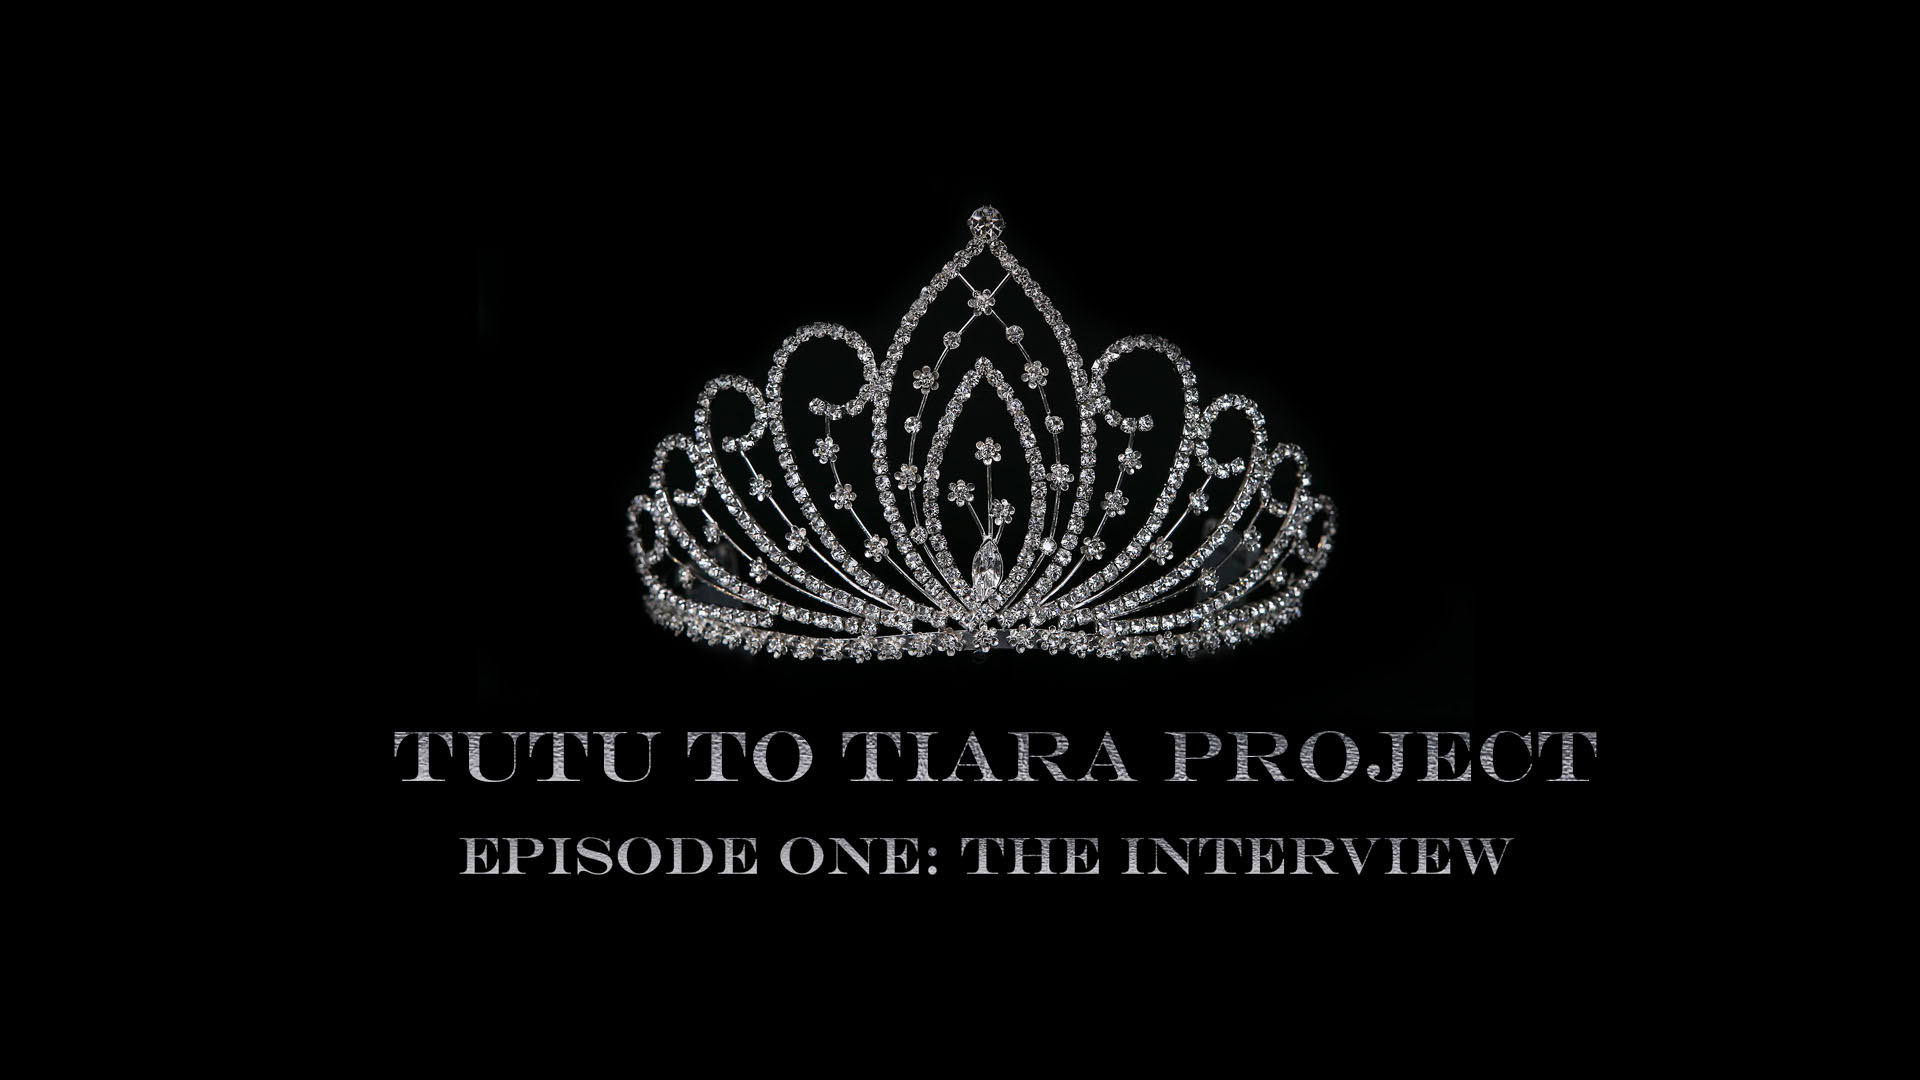 Tutu to Tiara Project. Episode One: The Interview